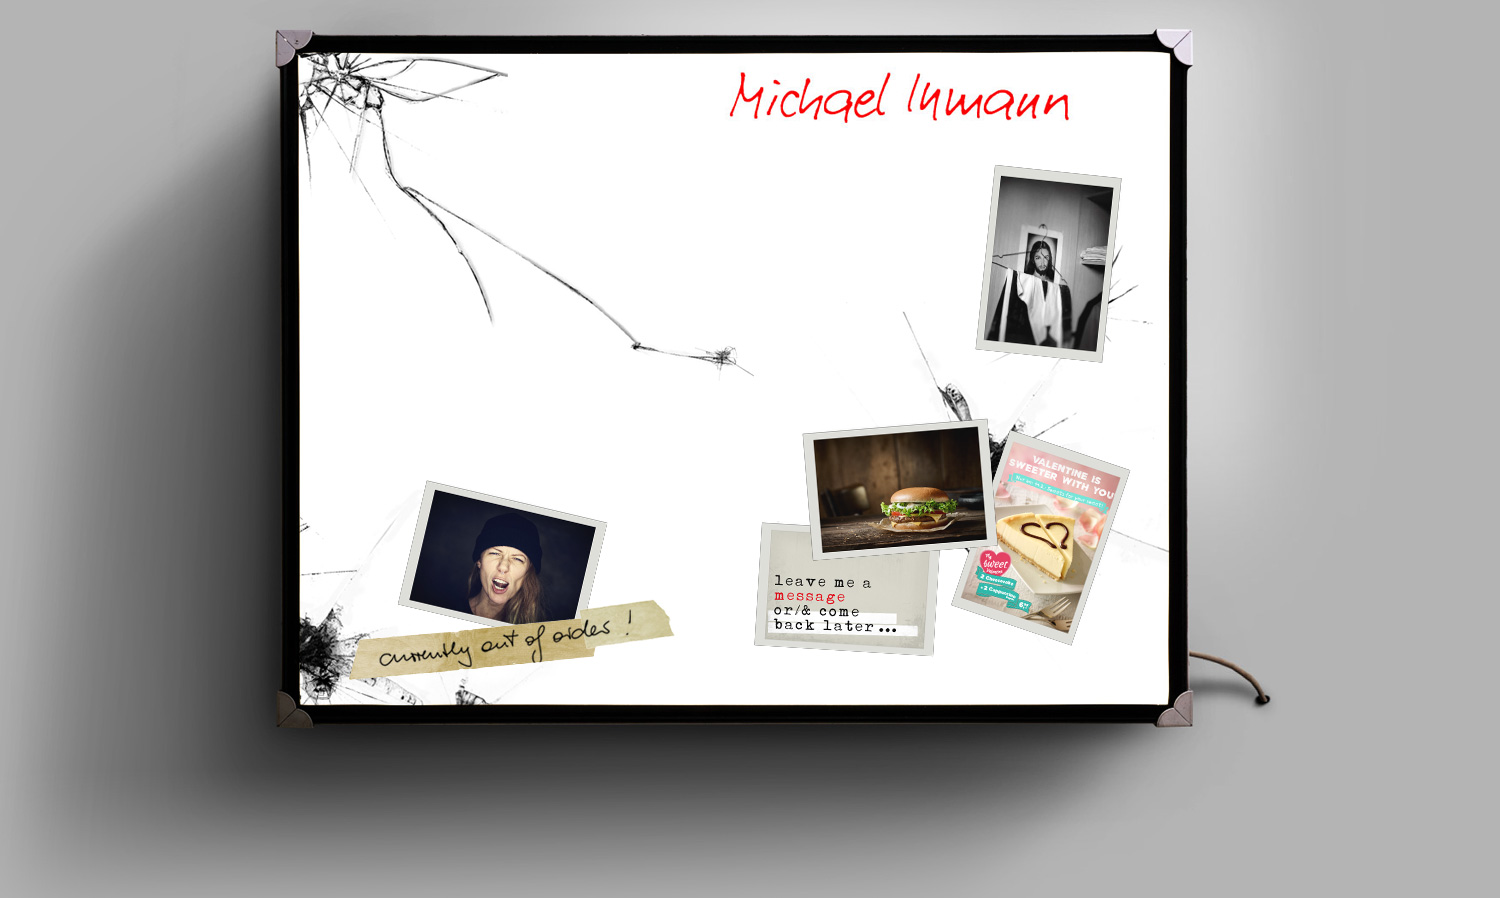 Michael Inmann, Photography, Art & Commercial